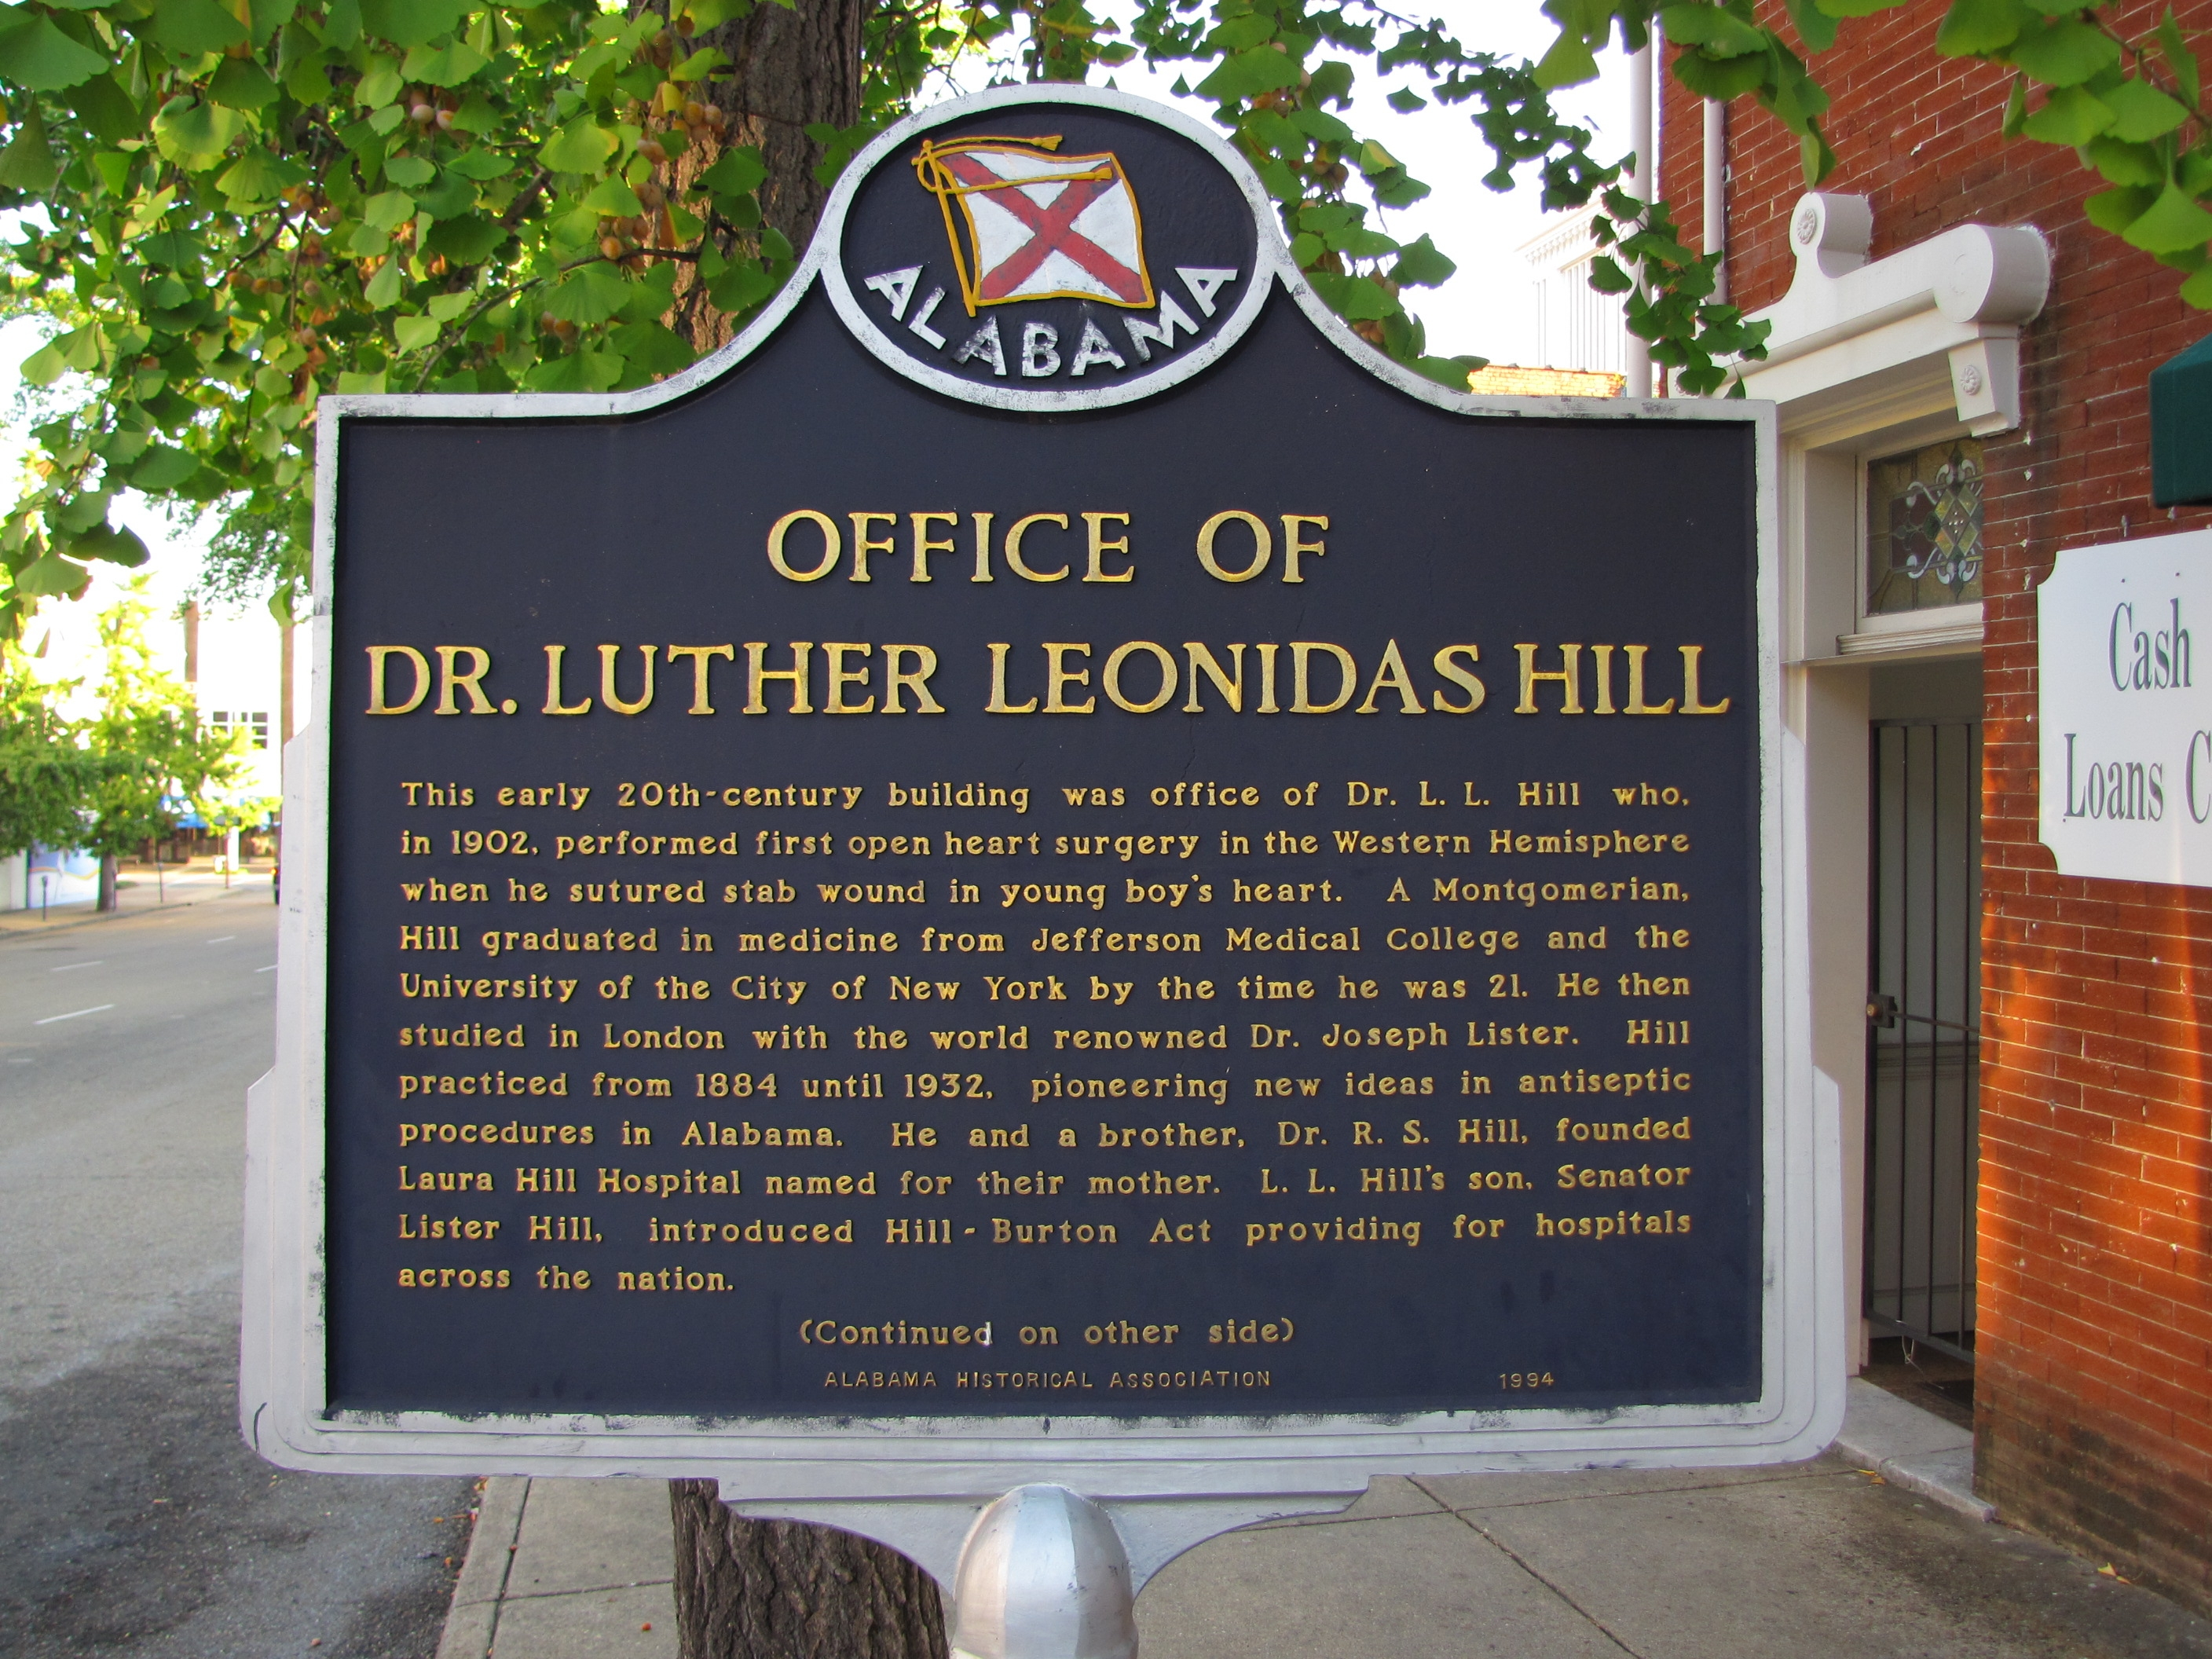 Office of Dr. Luther Leonidas Hill Marker